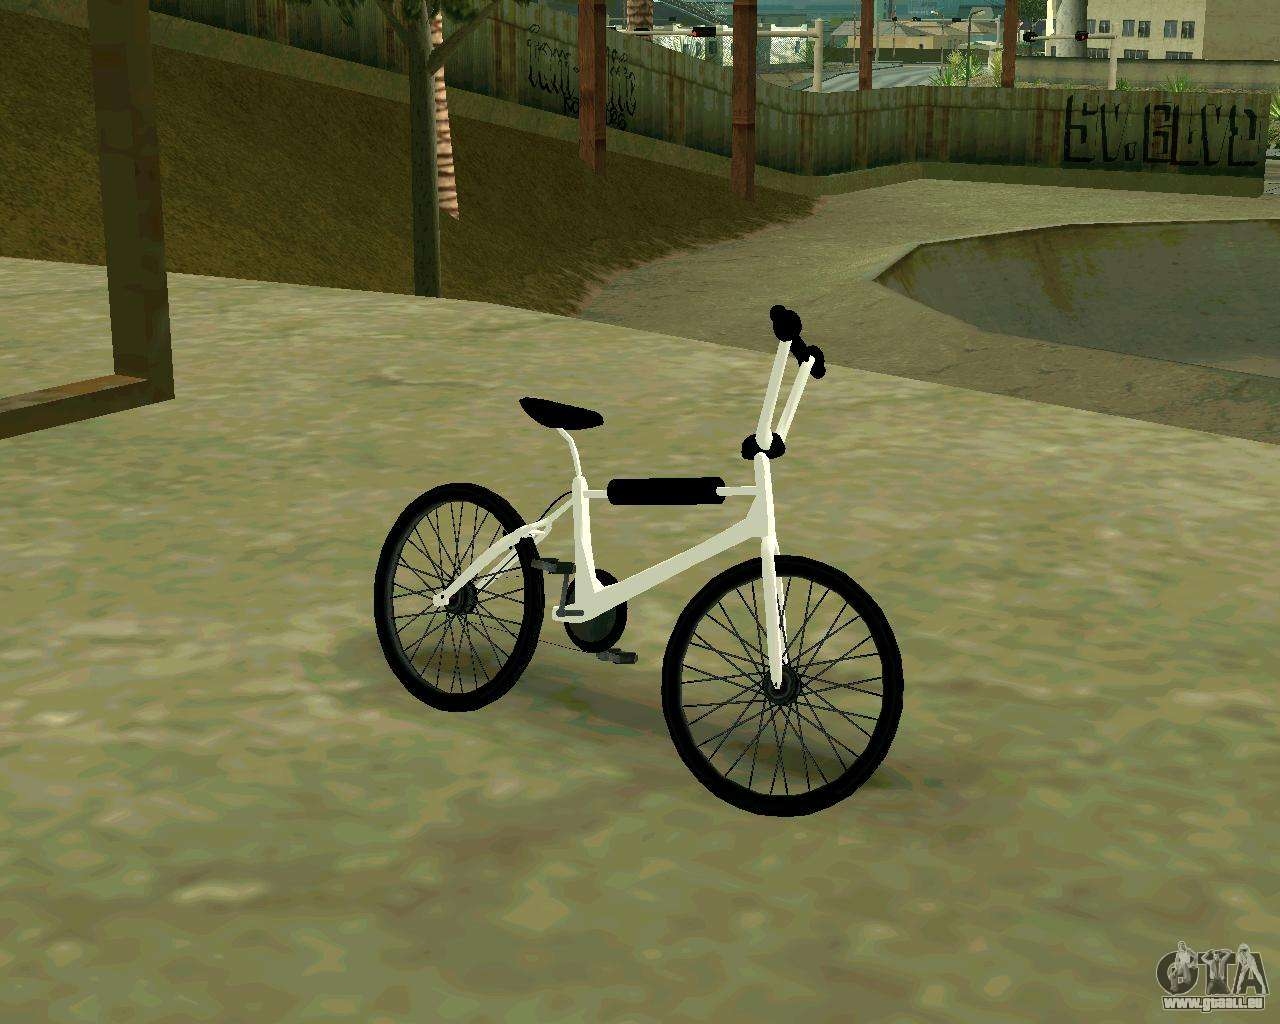 how to get gta san andreas on psp